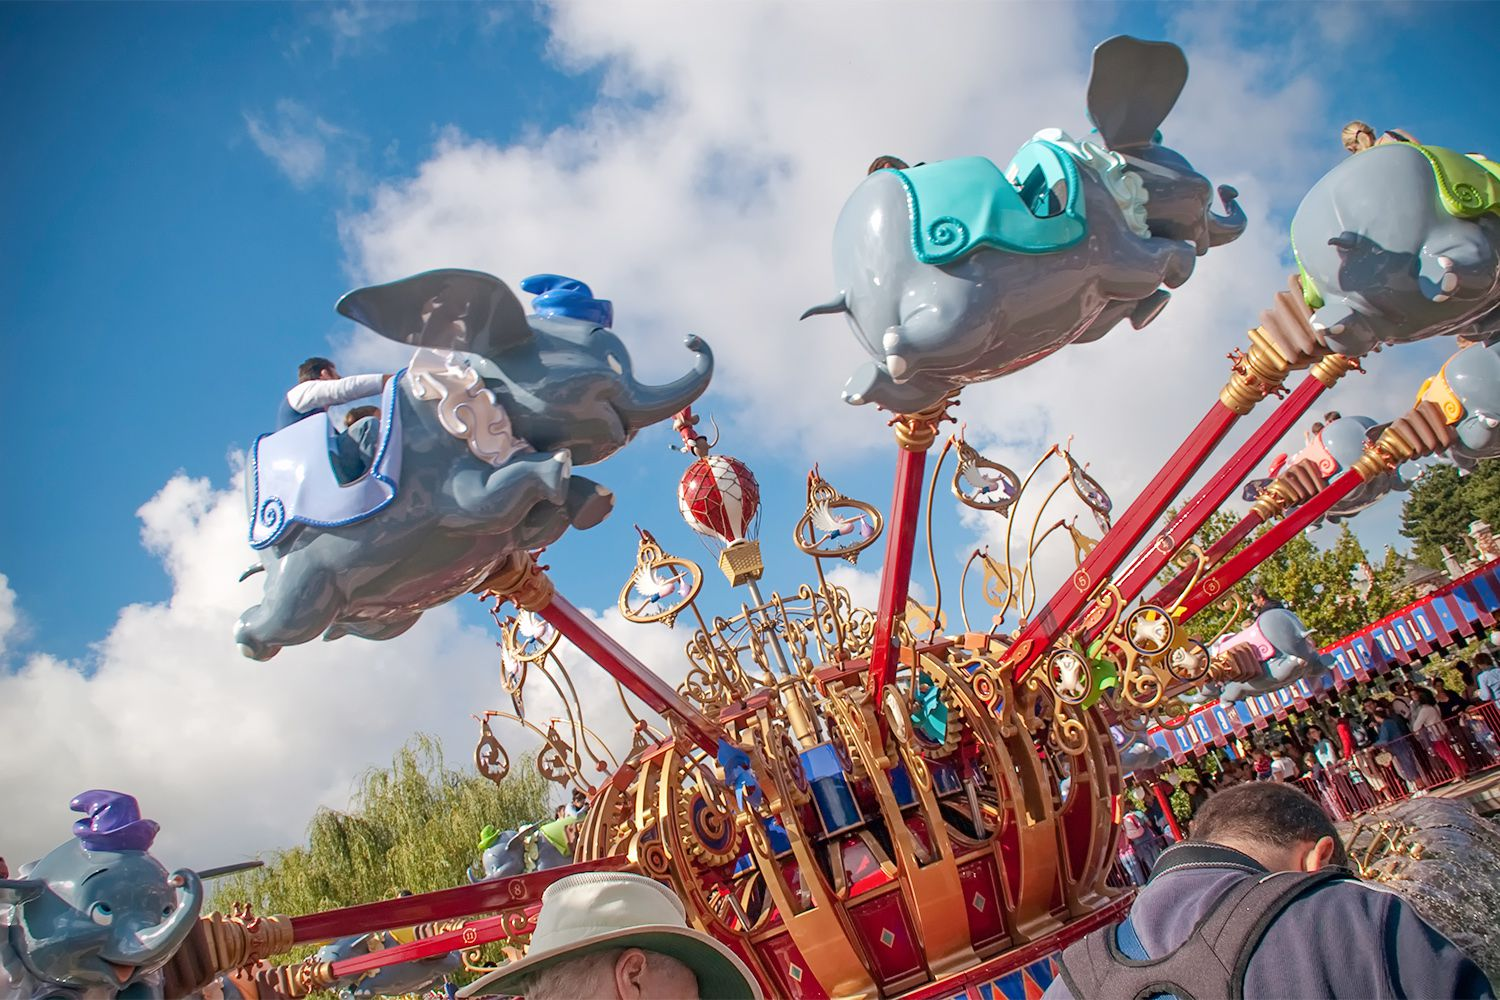 New Rides At Disneyland And California Adventure - The 12 best disneyland attractions for your little princess